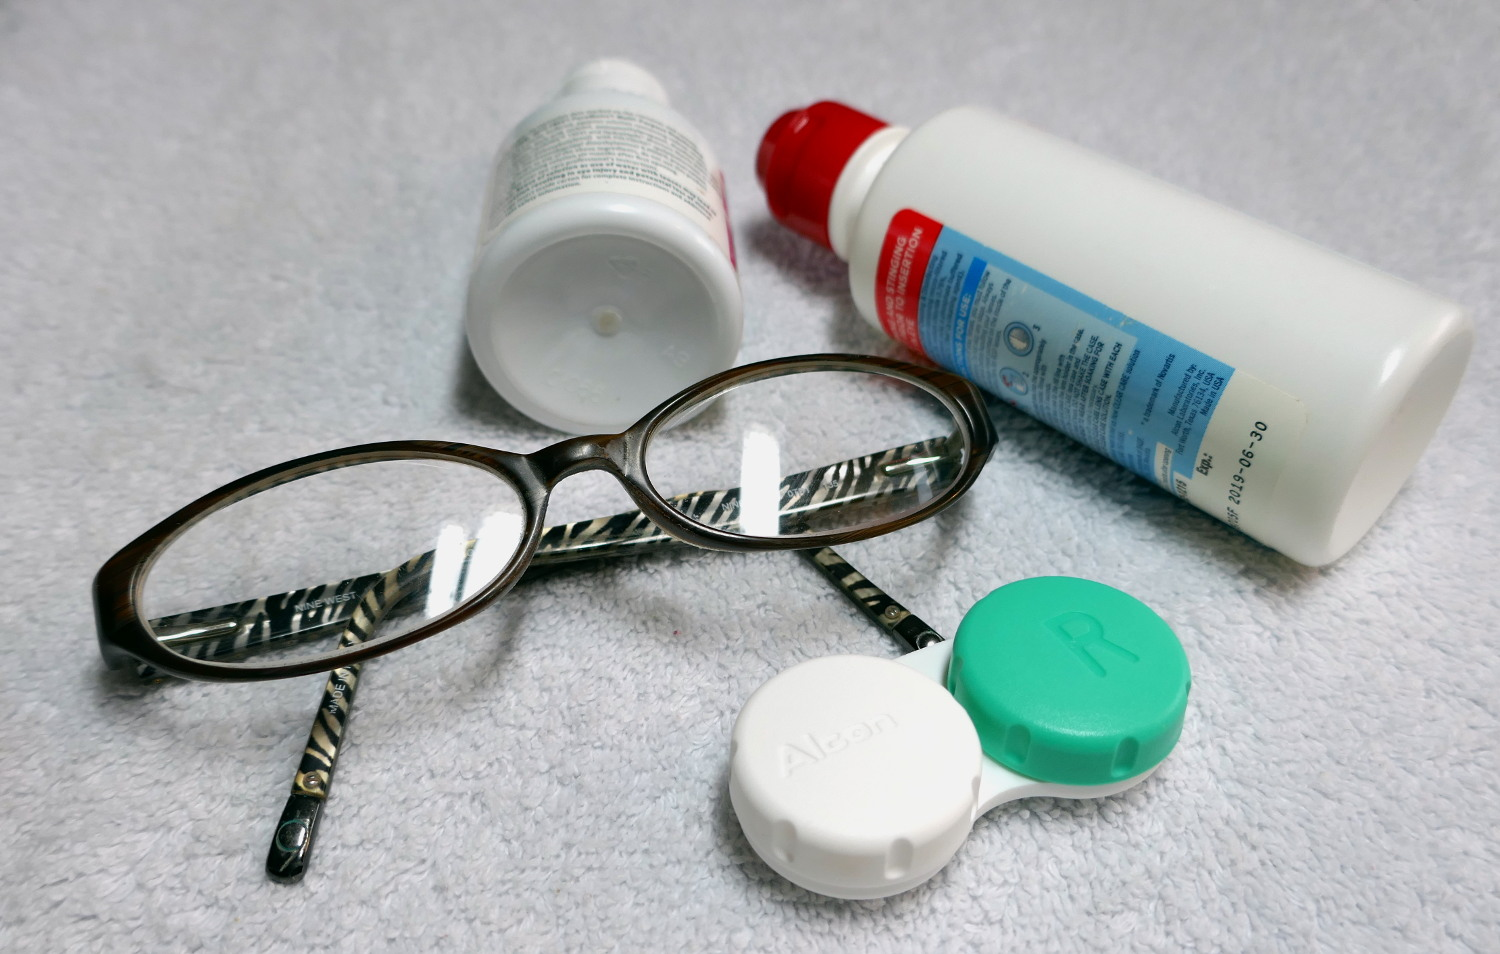 I wear contact lenses, but my 'emergency' pair of glasses have saved the day! Like when I ran out of disinfecting solution or when the  dry sandy dessert of Egypt  were just too much for my eyes!